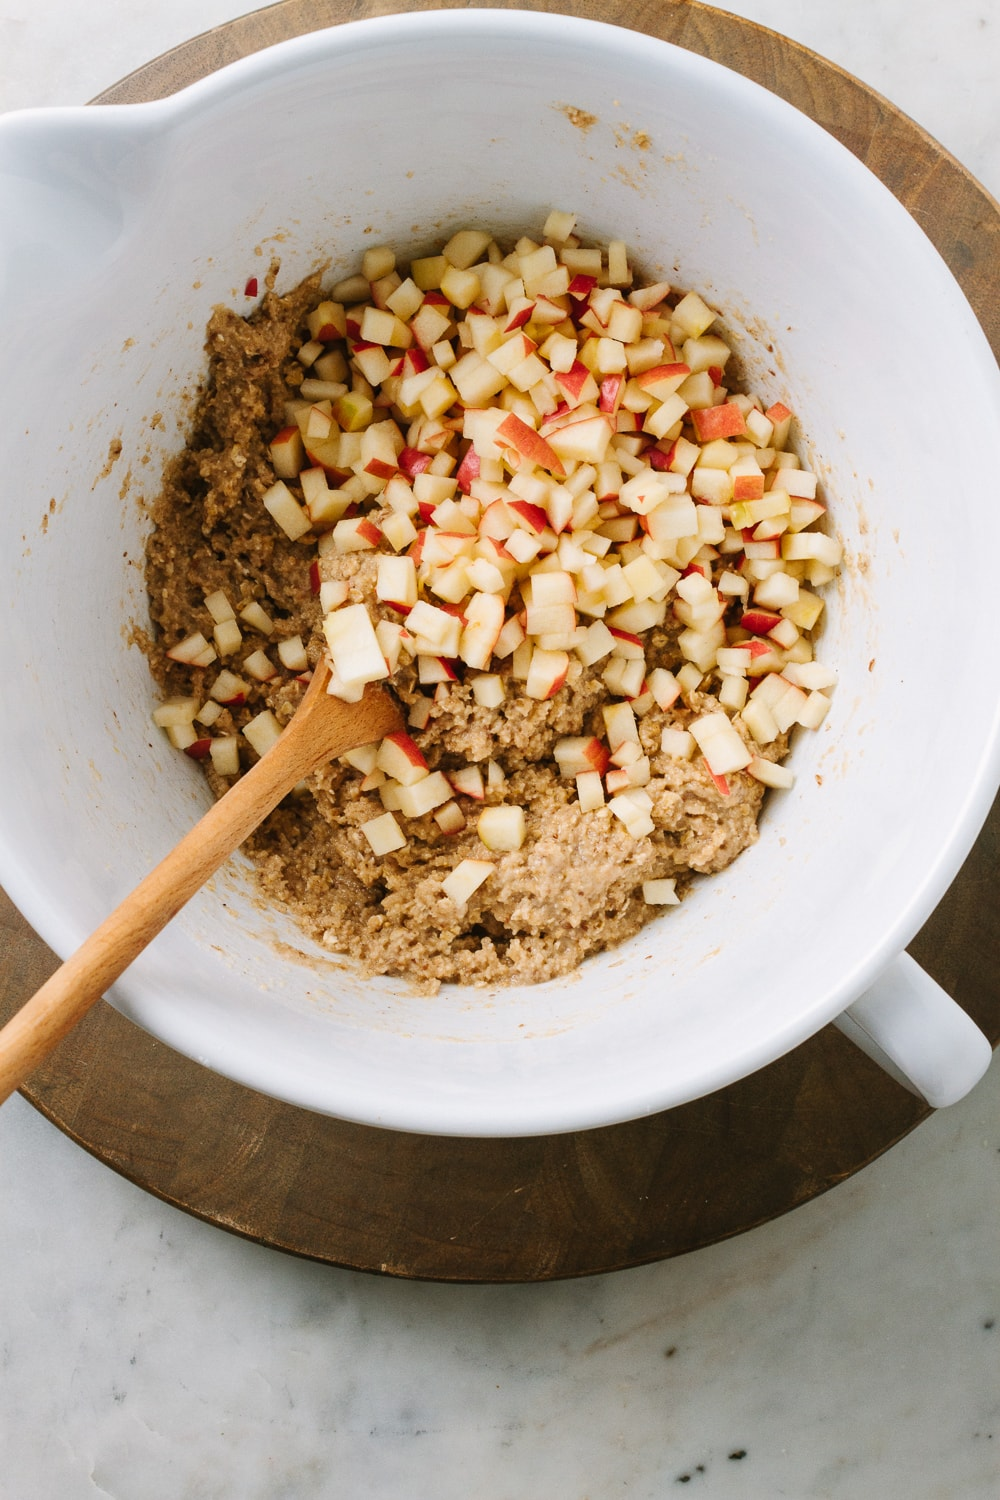 top down view of white mixing bowl with apple cinnamon muffin batter mixed and finely diced apples added before mixing, on a round wooden cutting board